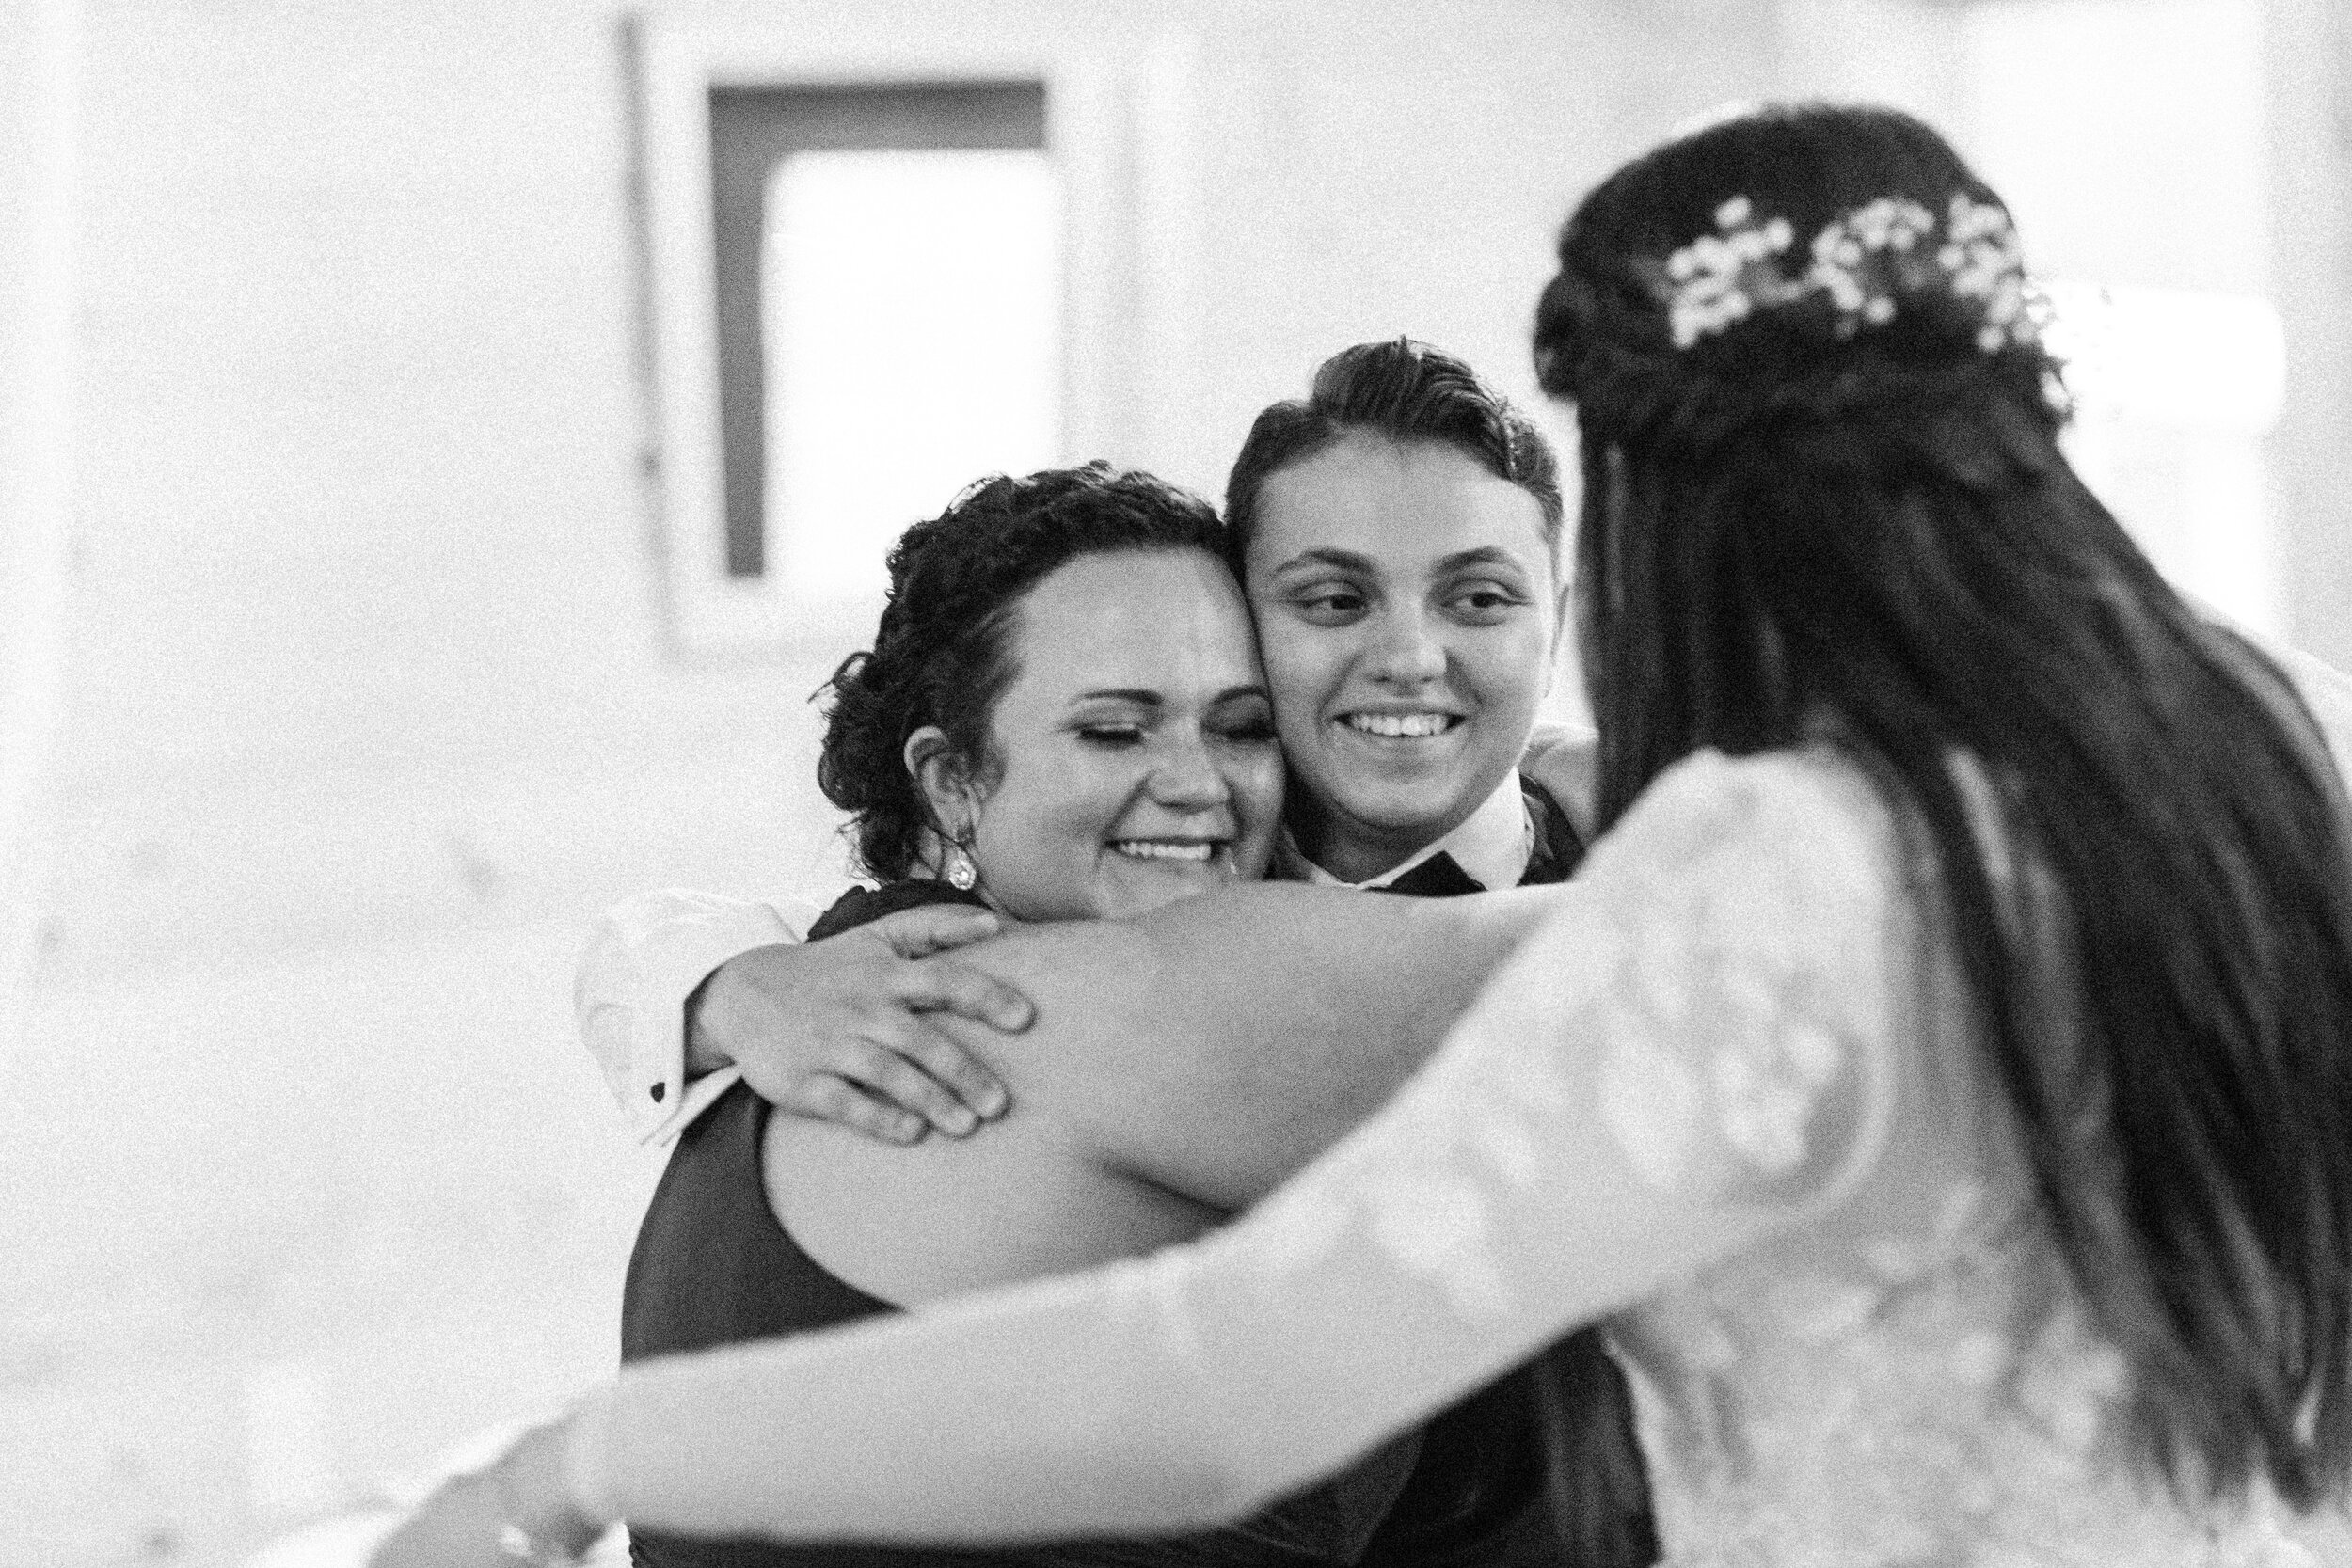 atlanta_wedding_photographers_georgia_same_sex_rustic_barn_farm_lesbian_weddings_inclusive_3157.jpg